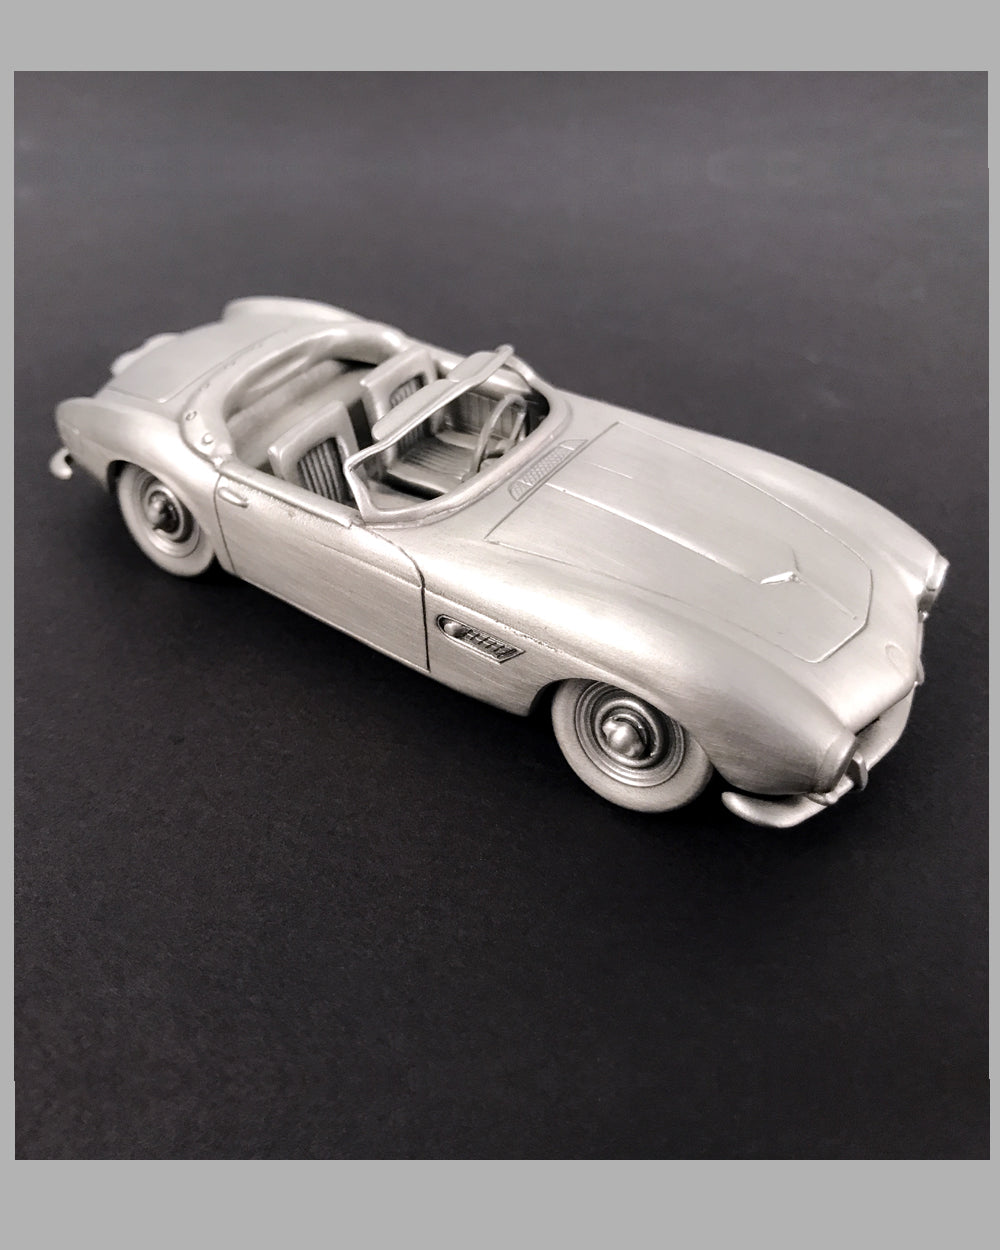 1957 BMW 507 pewter sculpture model